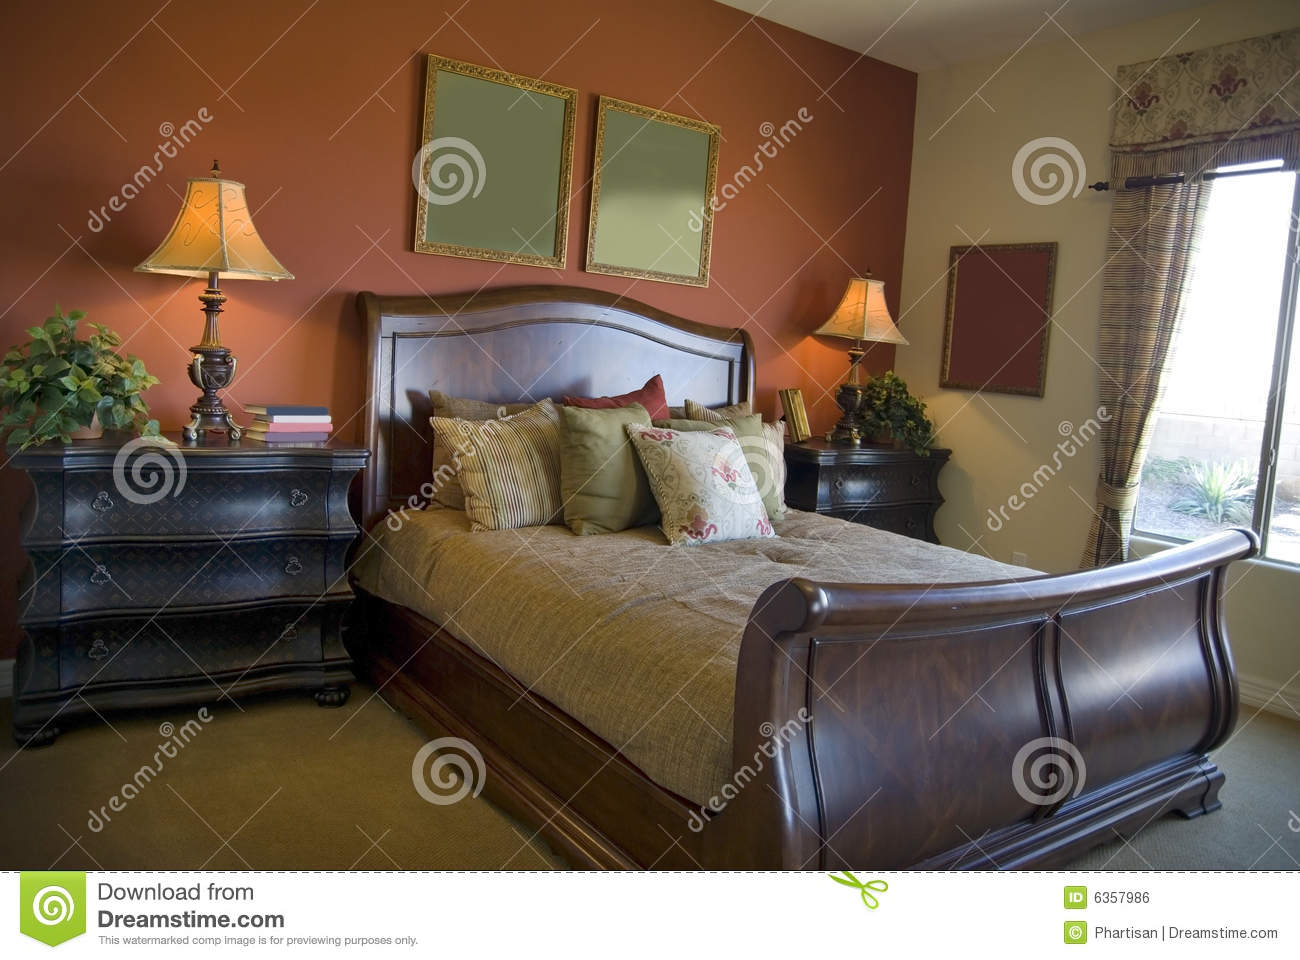 Beautiful bedroom interior design royalty free stock image for Beautiful bedroom interior